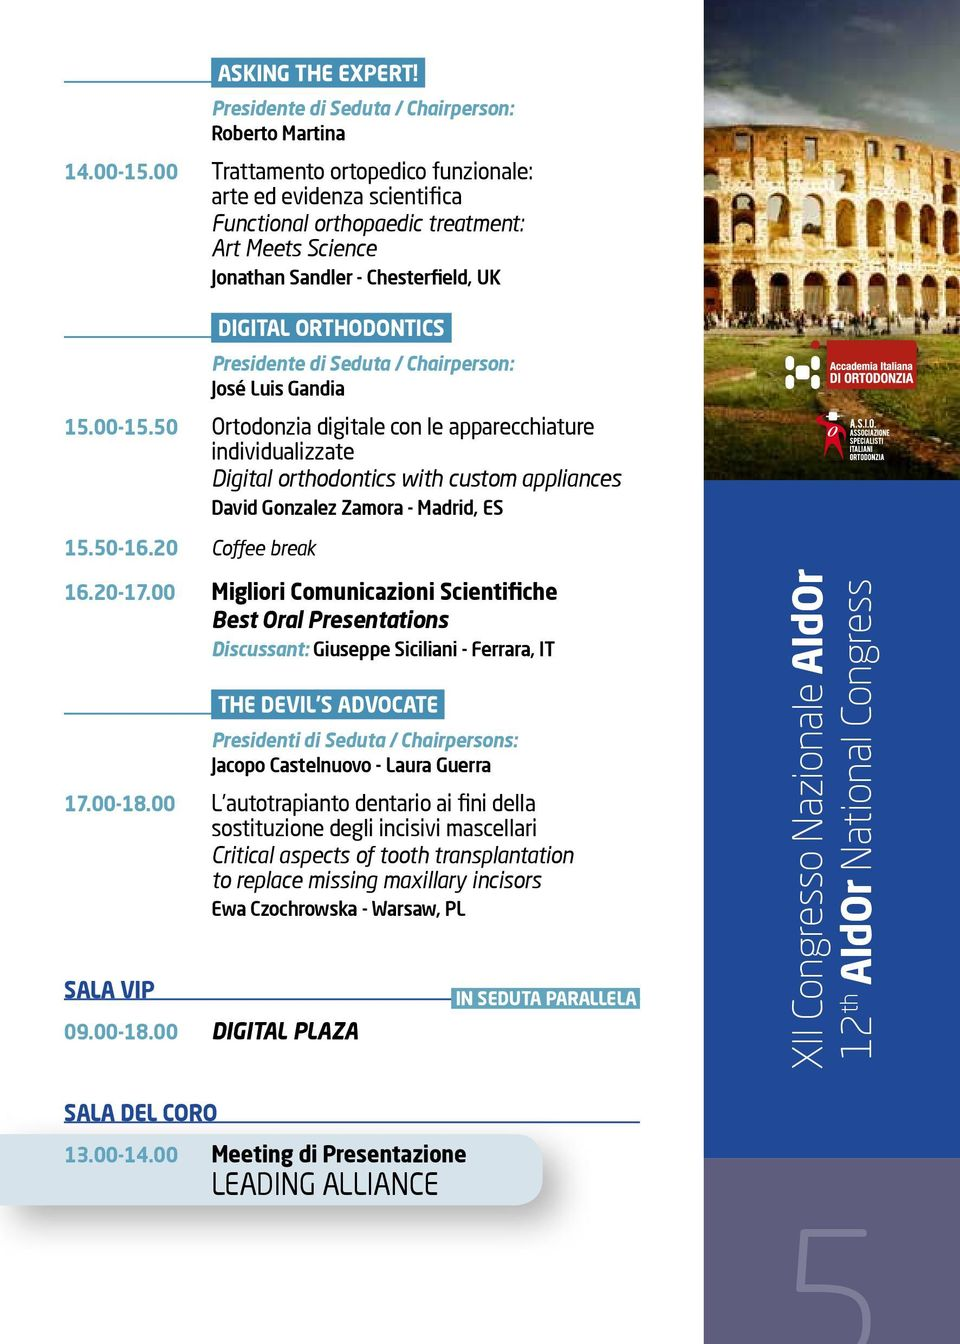 Chairperson: José Luis Gandia 15.00-15.50 Ortodonzia digitale con le apparecchiature individualizzate Digital orthodontics with custom appliances David Gonzalez Zamora - Madrid, ES 15.50-16.